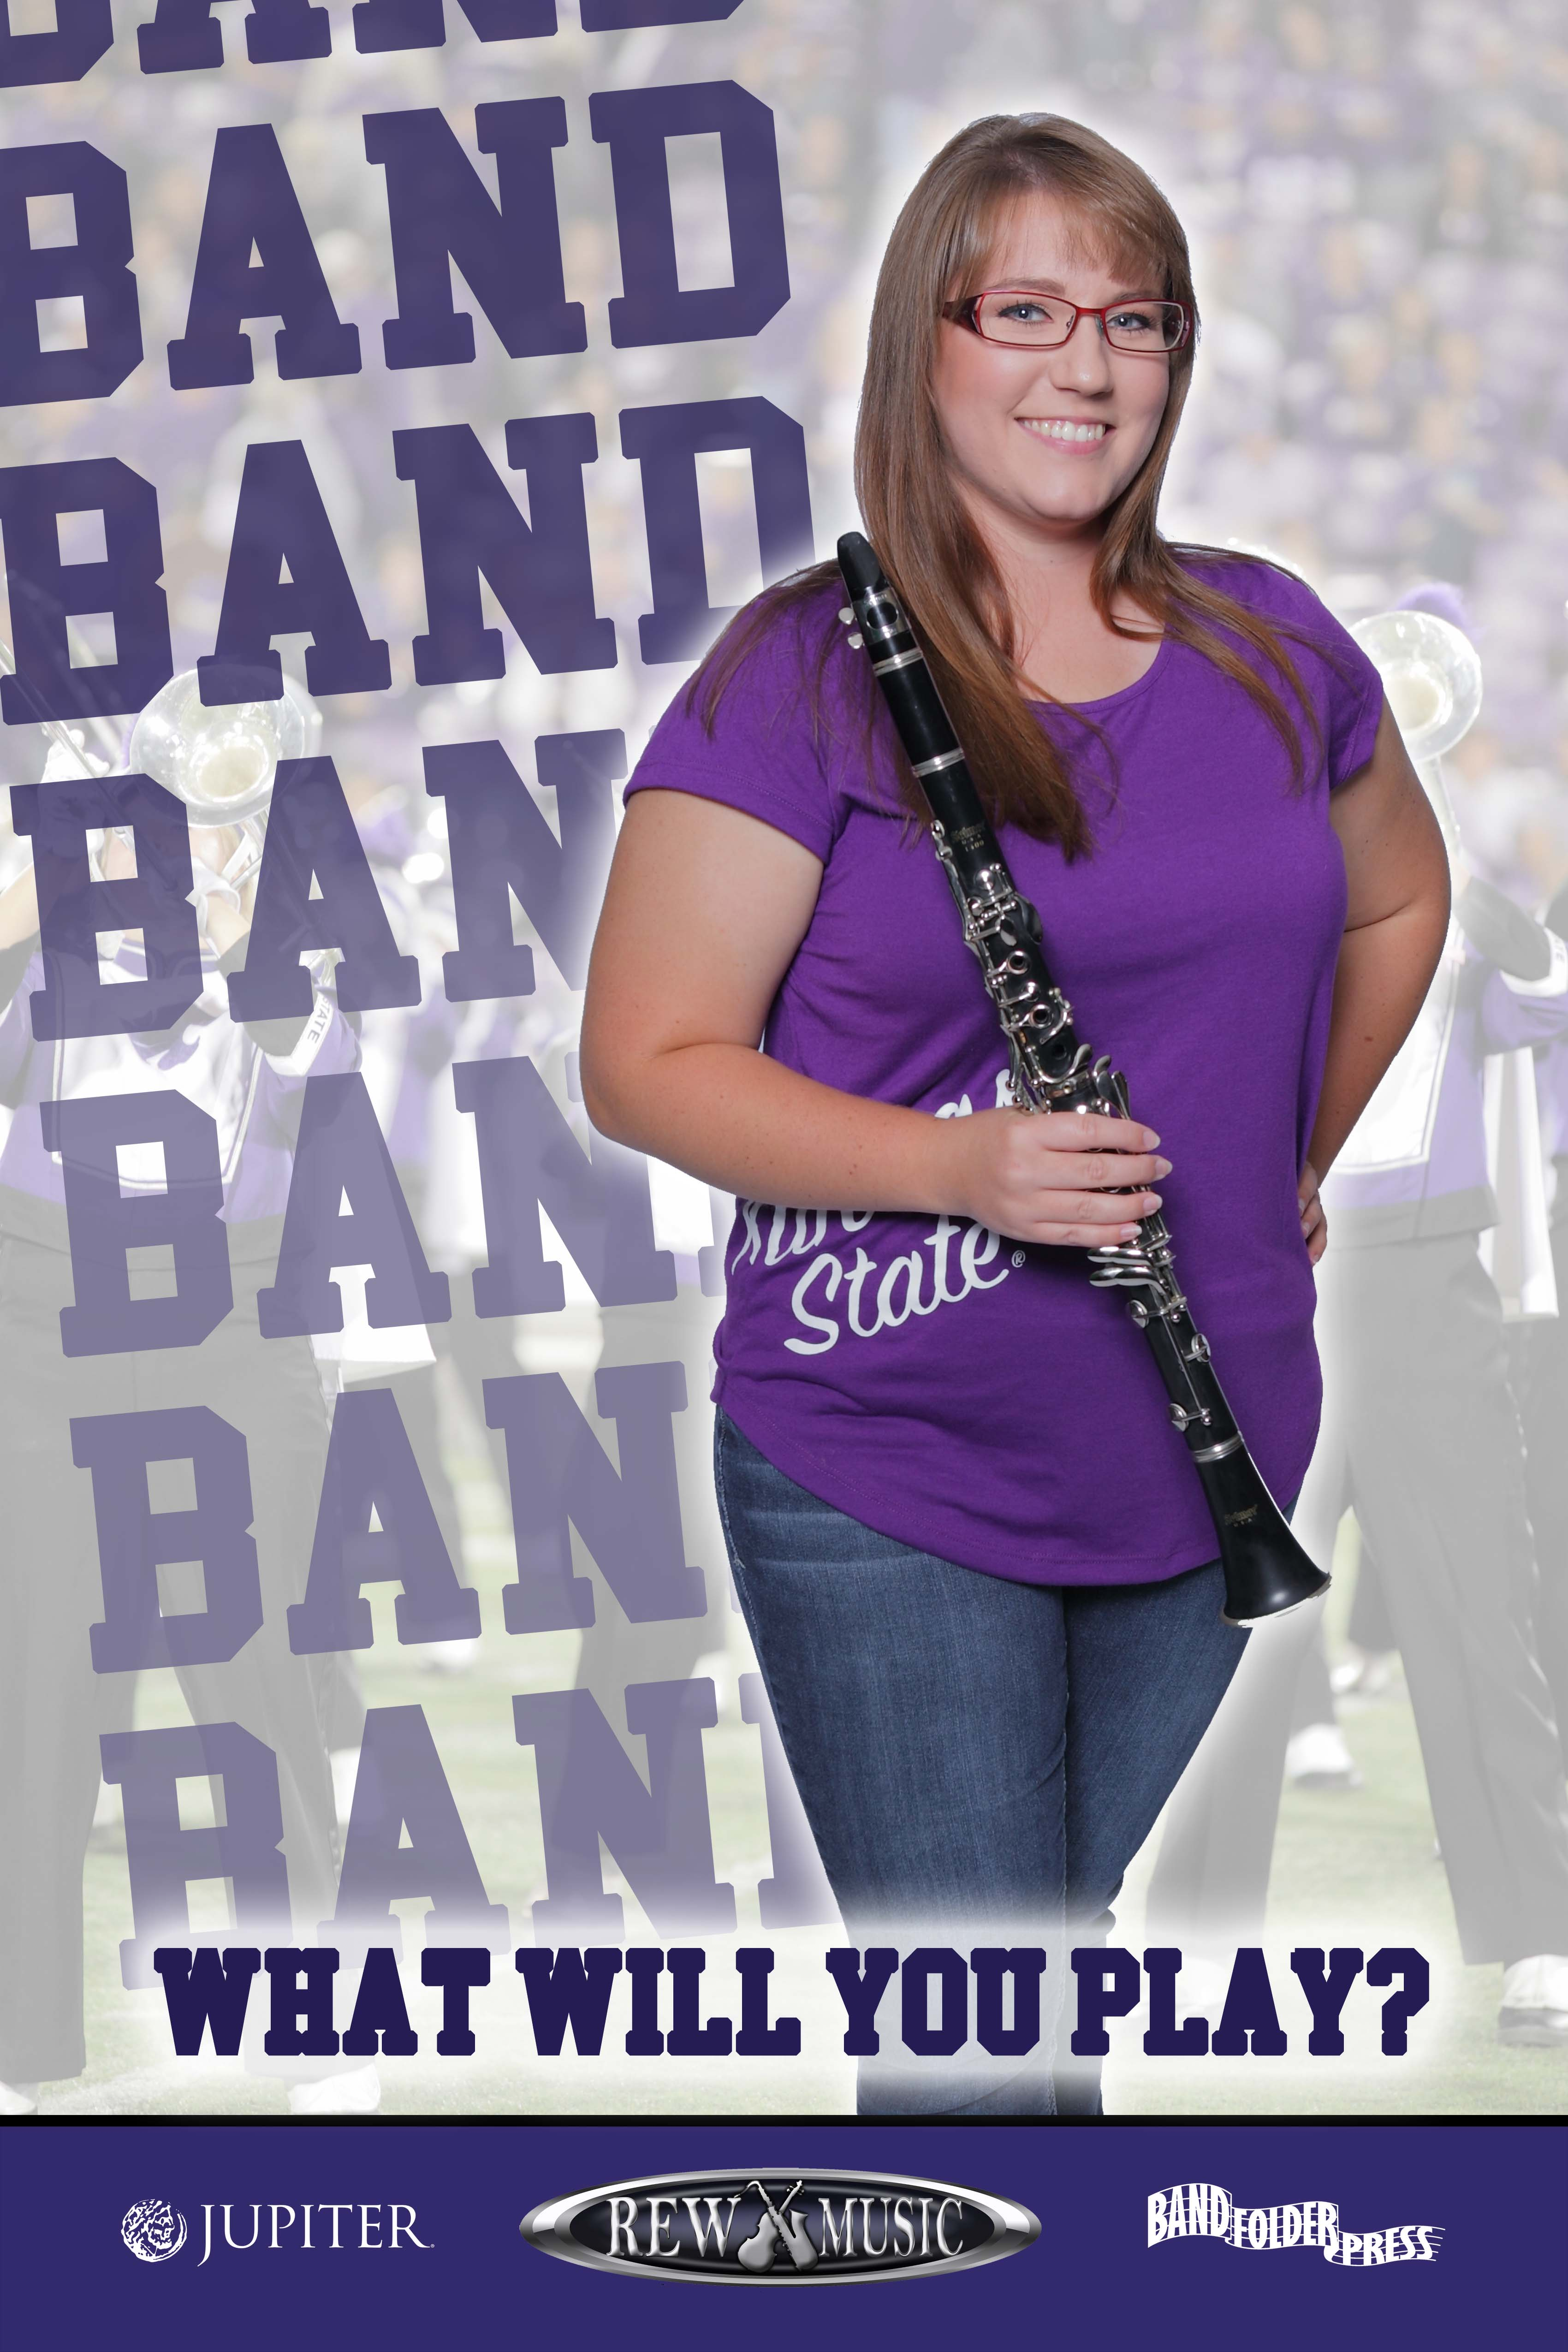 Join the School Band Clarinet player